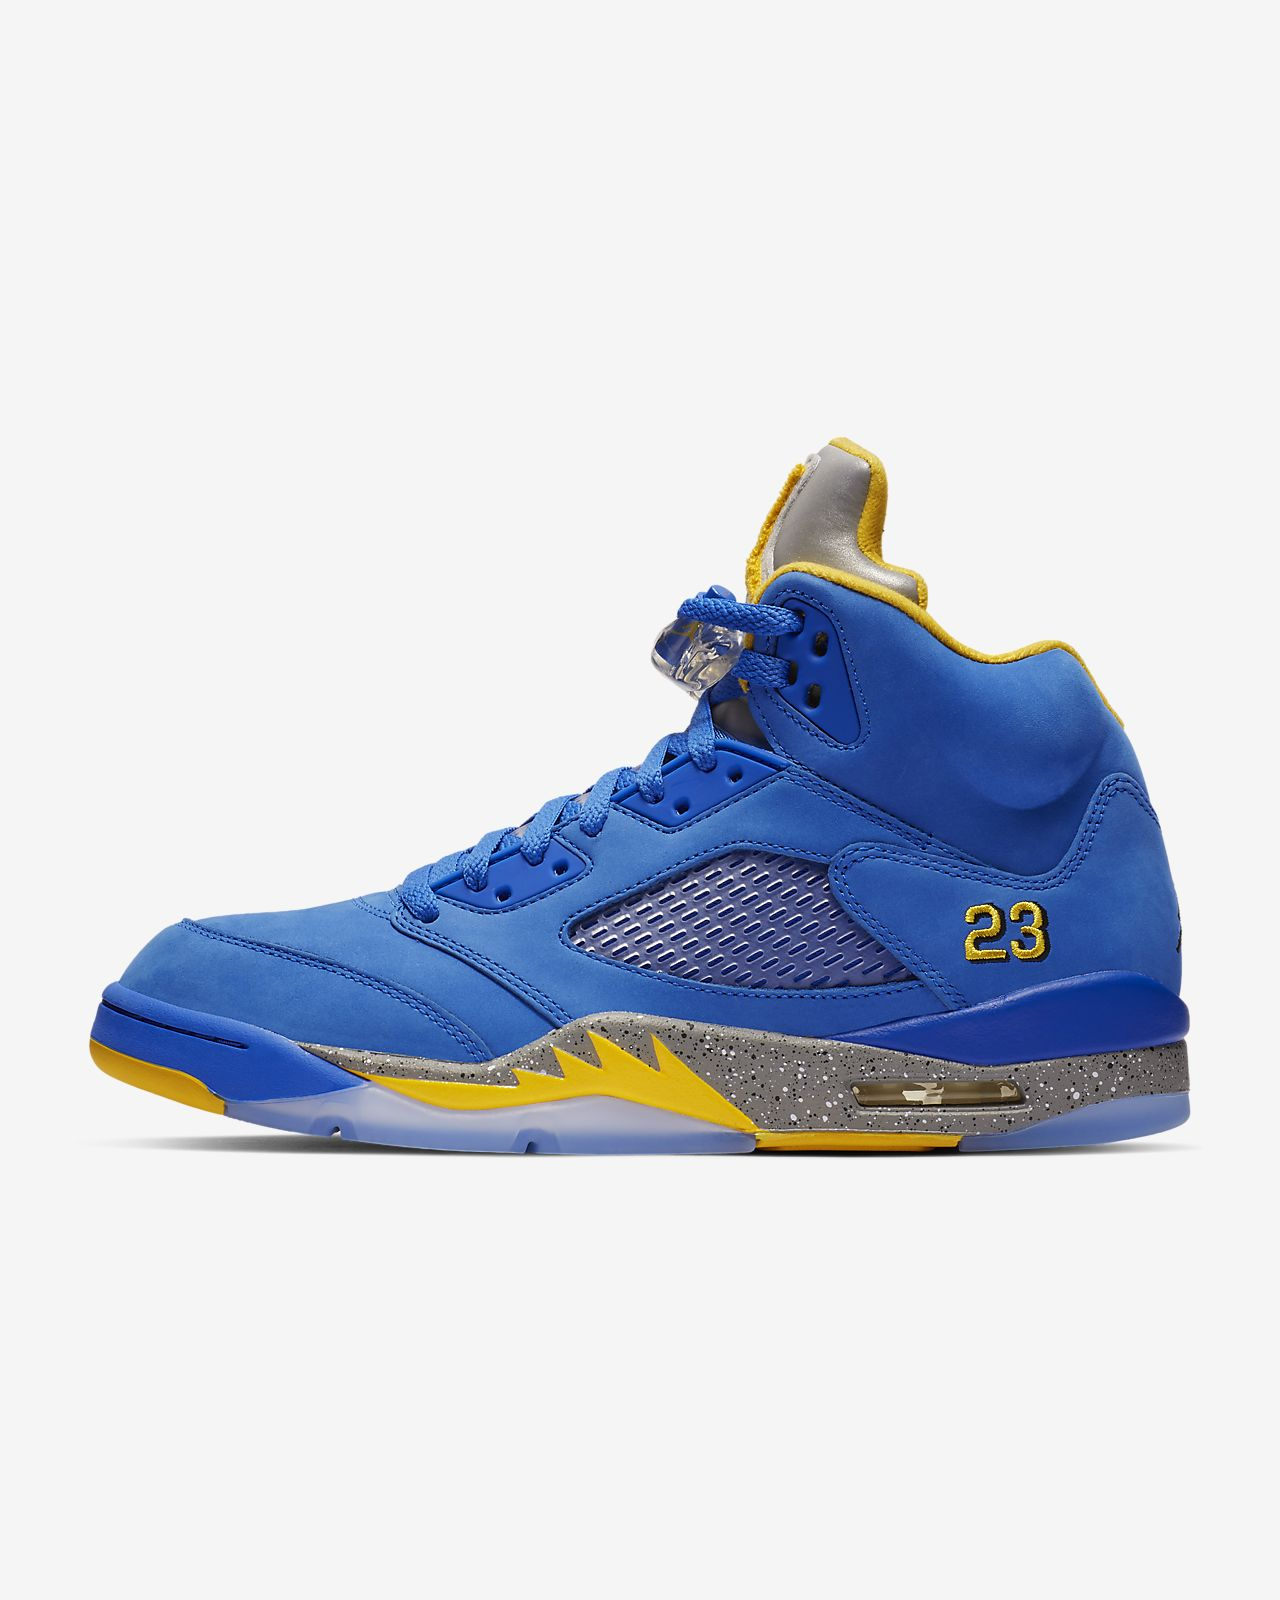 online retailer e7300 ae115 Men s Shoe. Air Jordan 5 Laney JSP